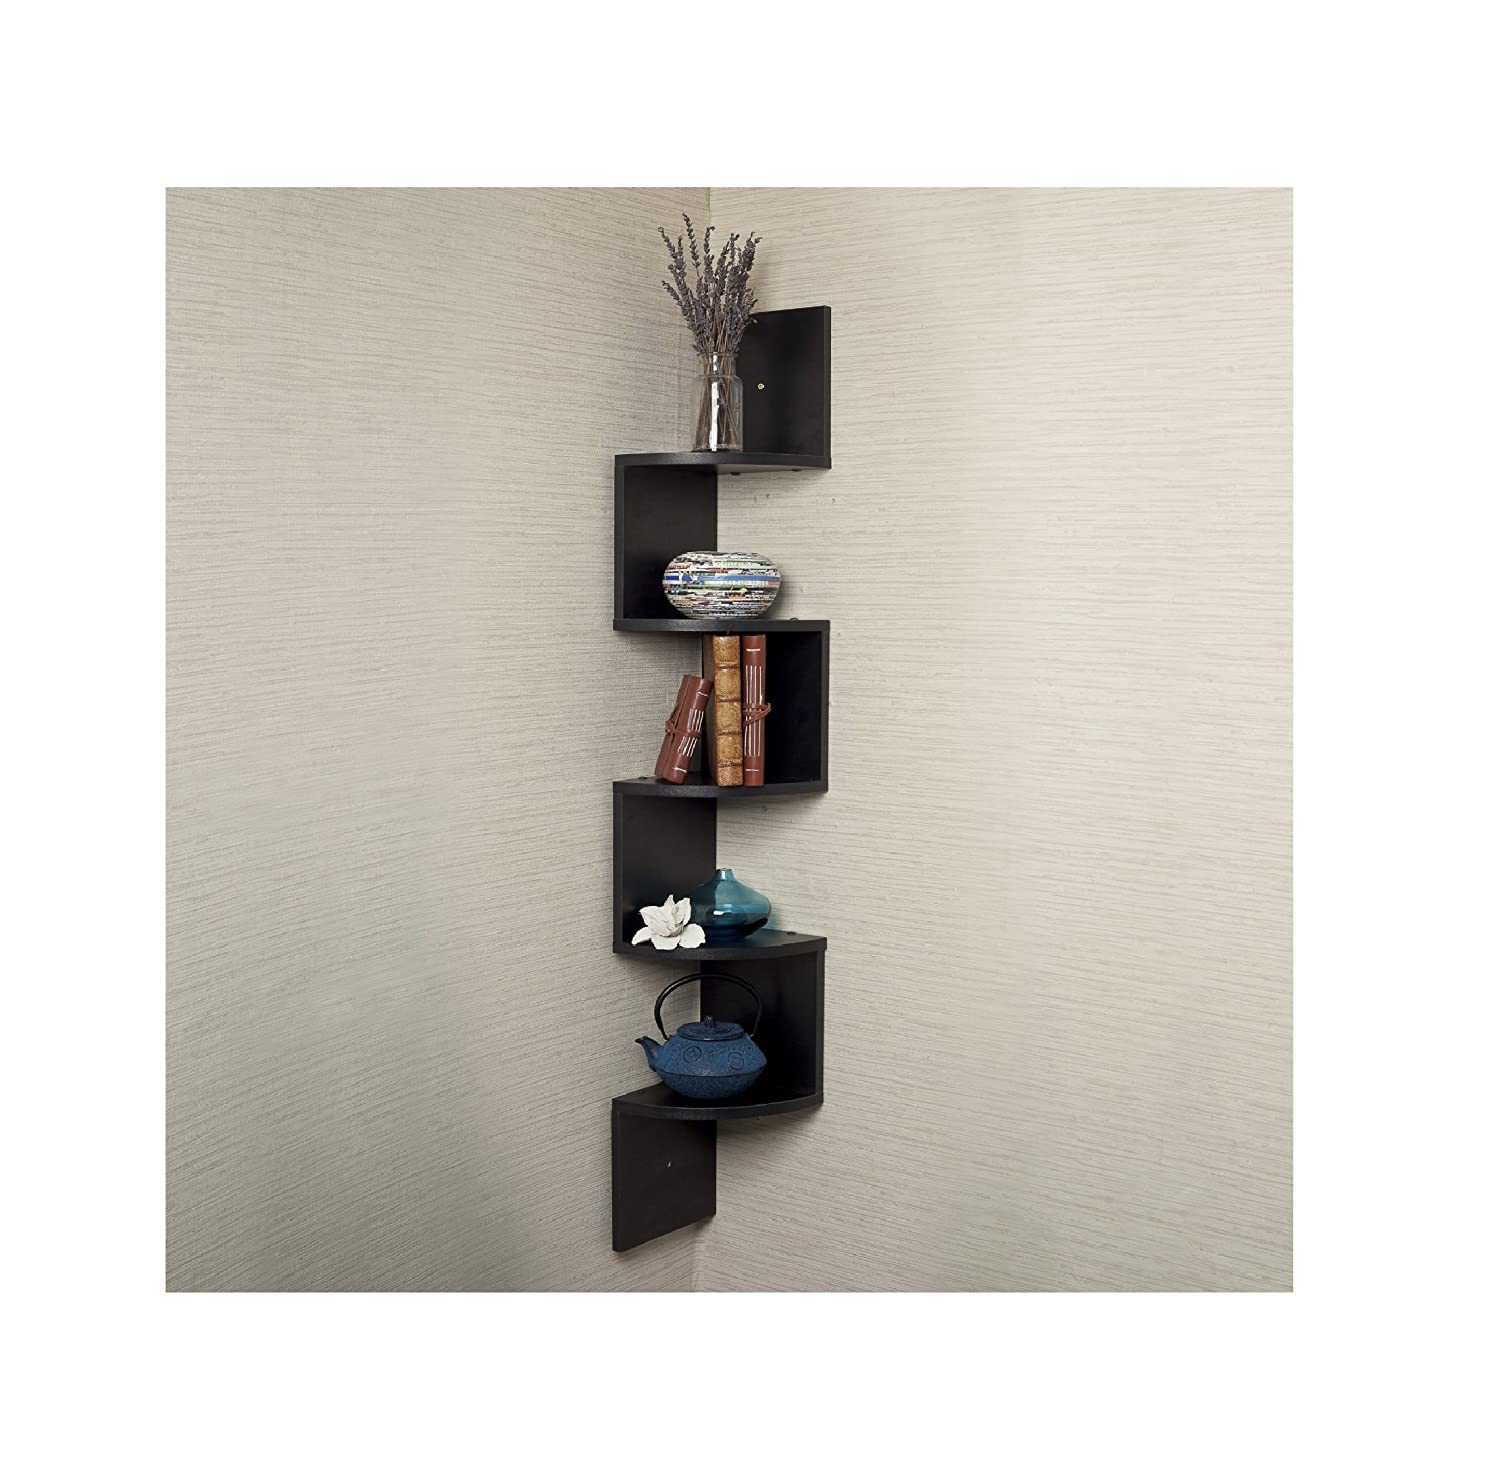 5 Tiers Wall Mount Shelves Large Home Decor Corner: corner wall mounted shelves